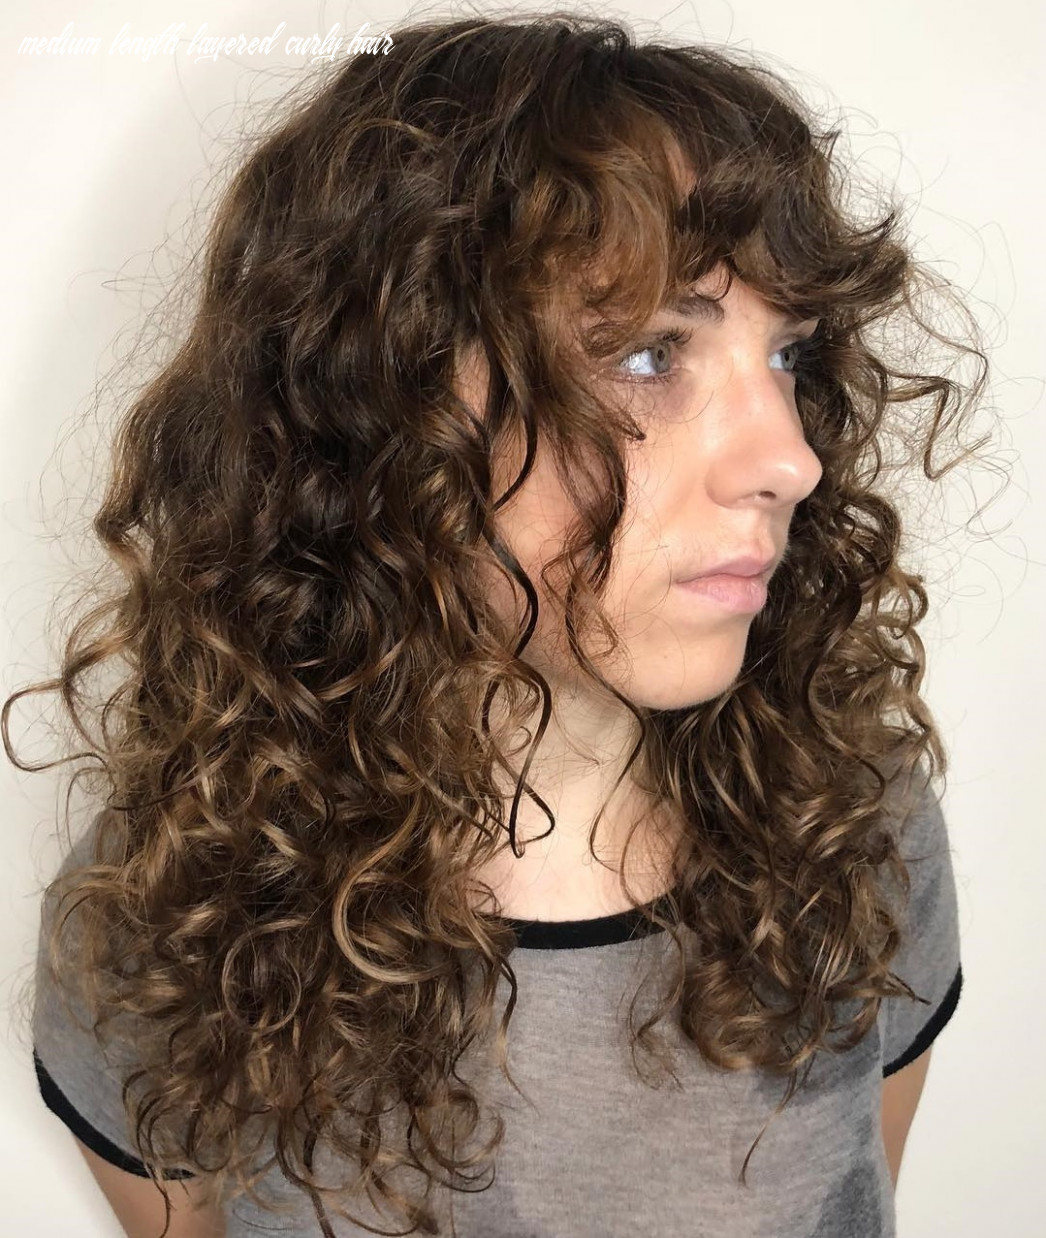 11 natural curly hairstyles & curly hair ideas to try in 11